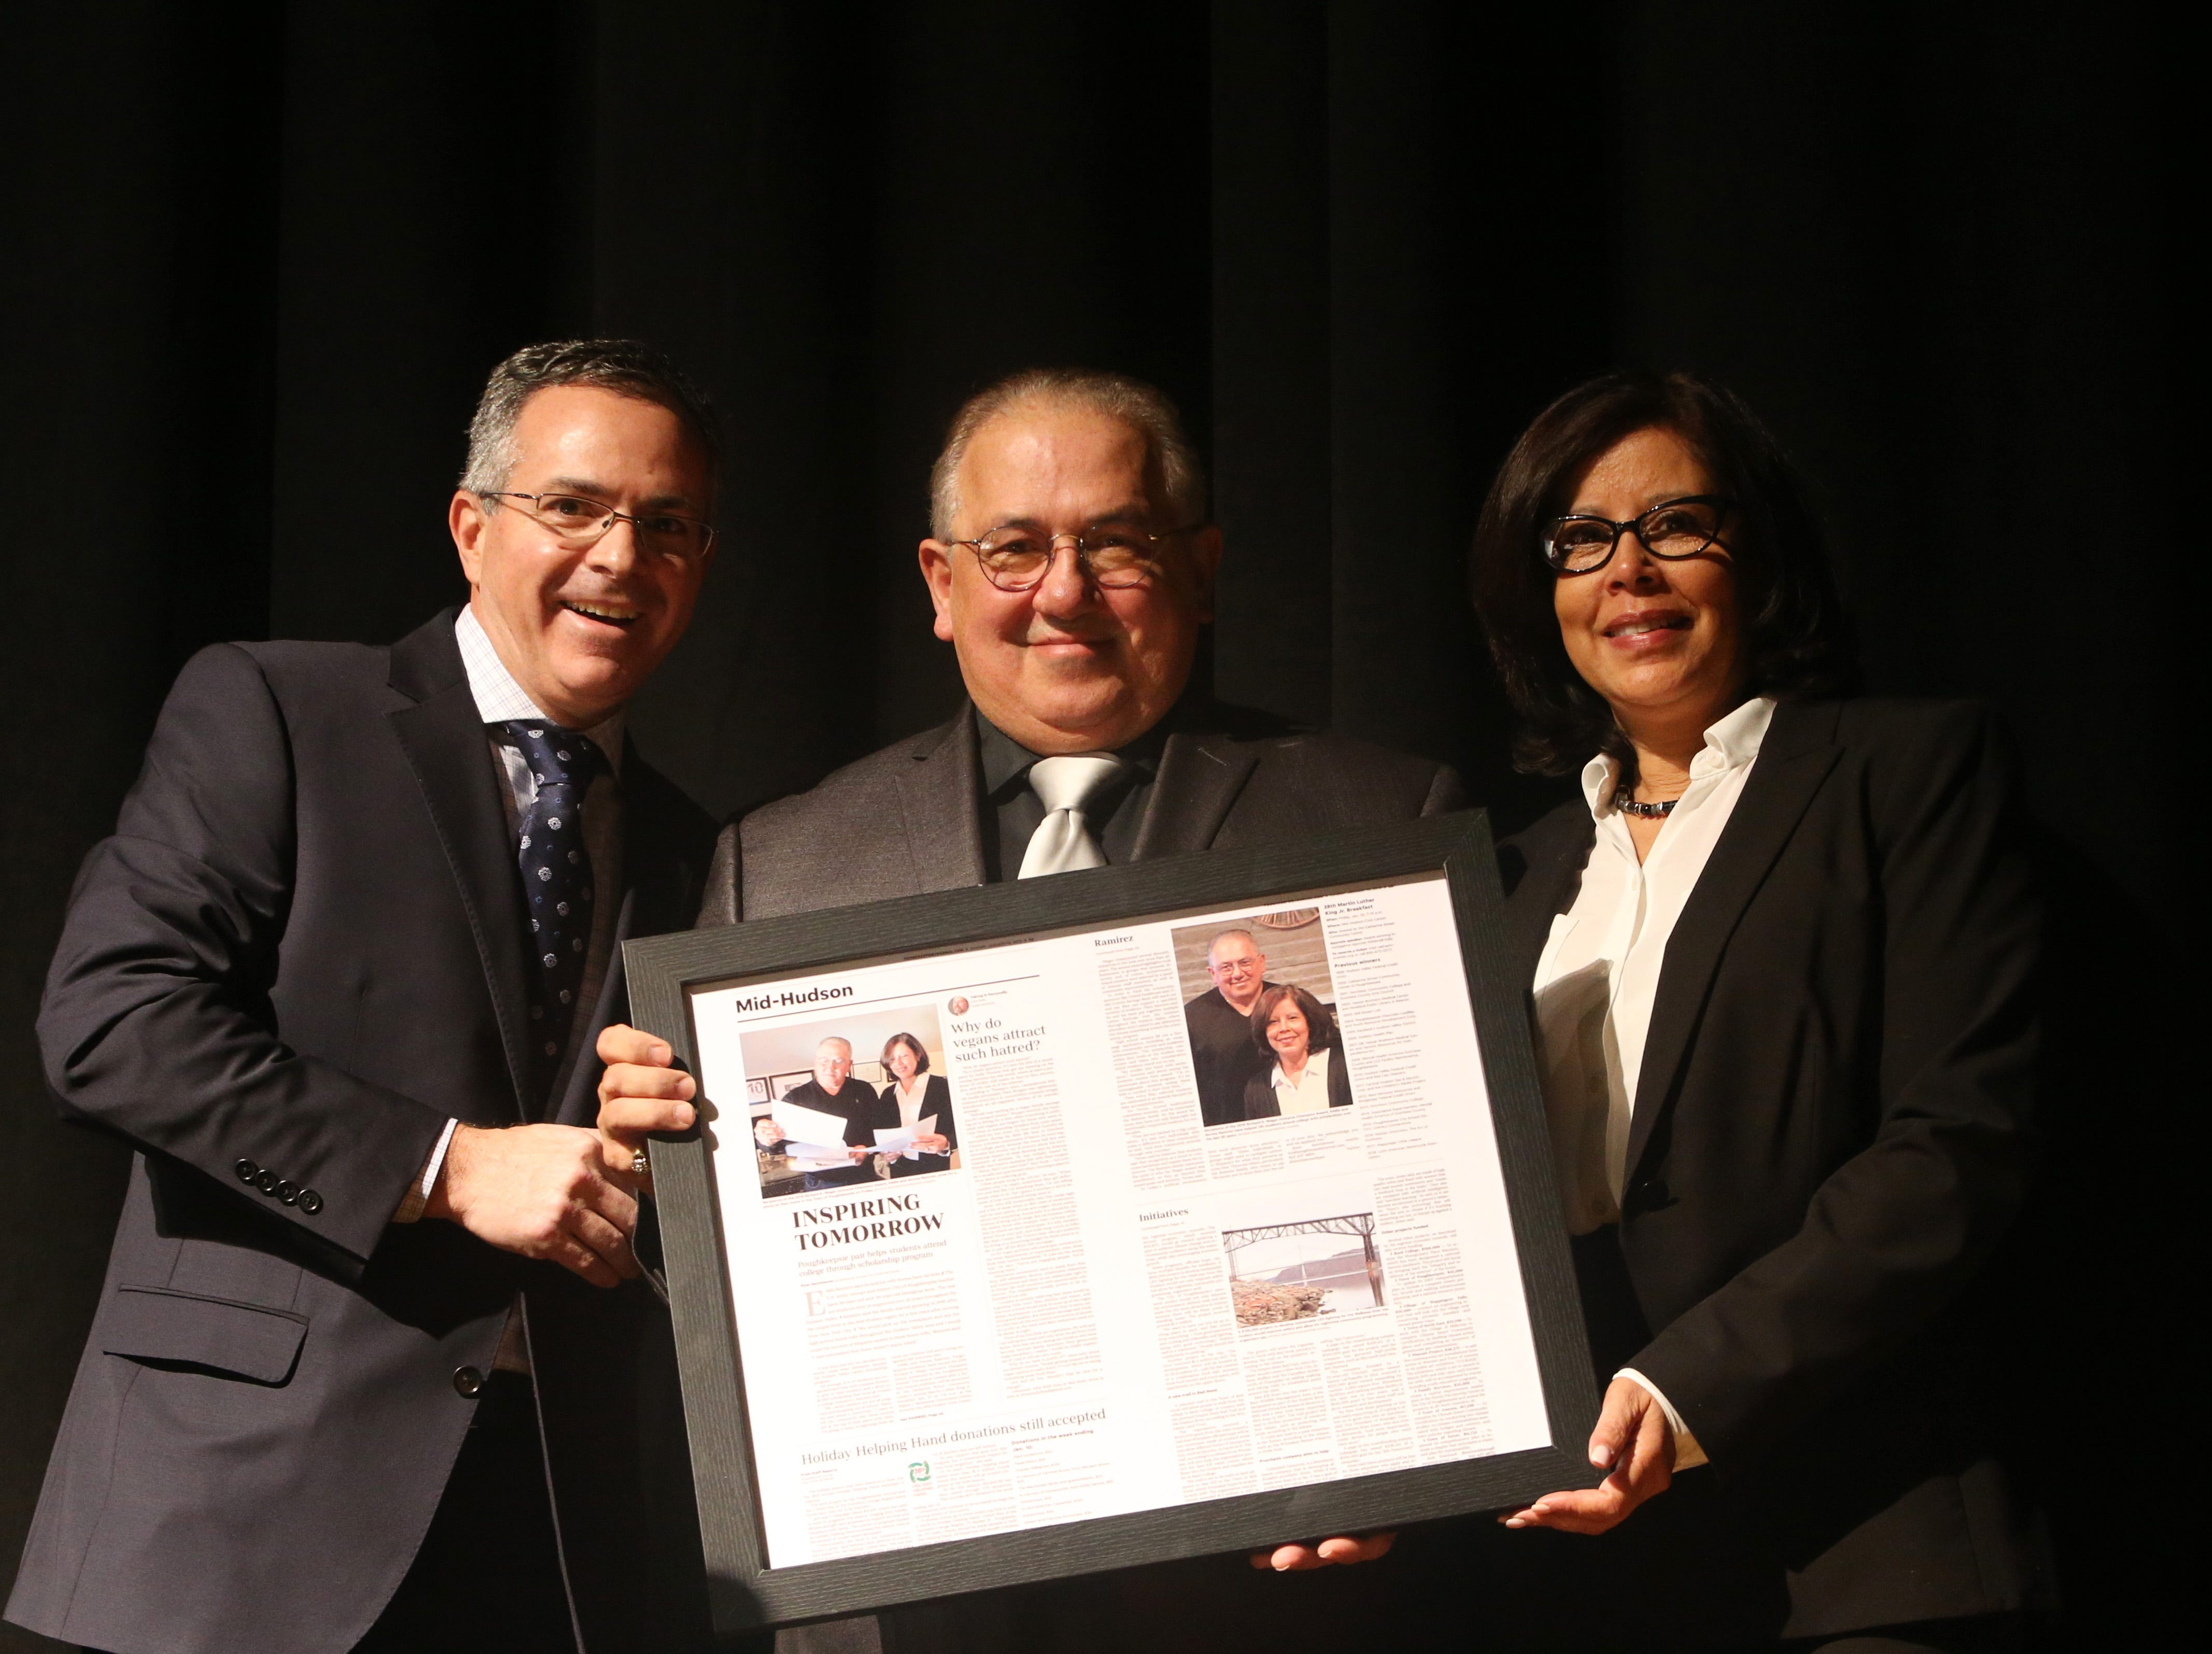 Poughkeepsie Journal Media president Jim Fogler presents Eddie and Norma Ramirez with the Richard K. Wager Inclusive Champion Award during the Martin Luther King Jr. Breakfast in the City of Poughkeepsie on January 25, 2019.